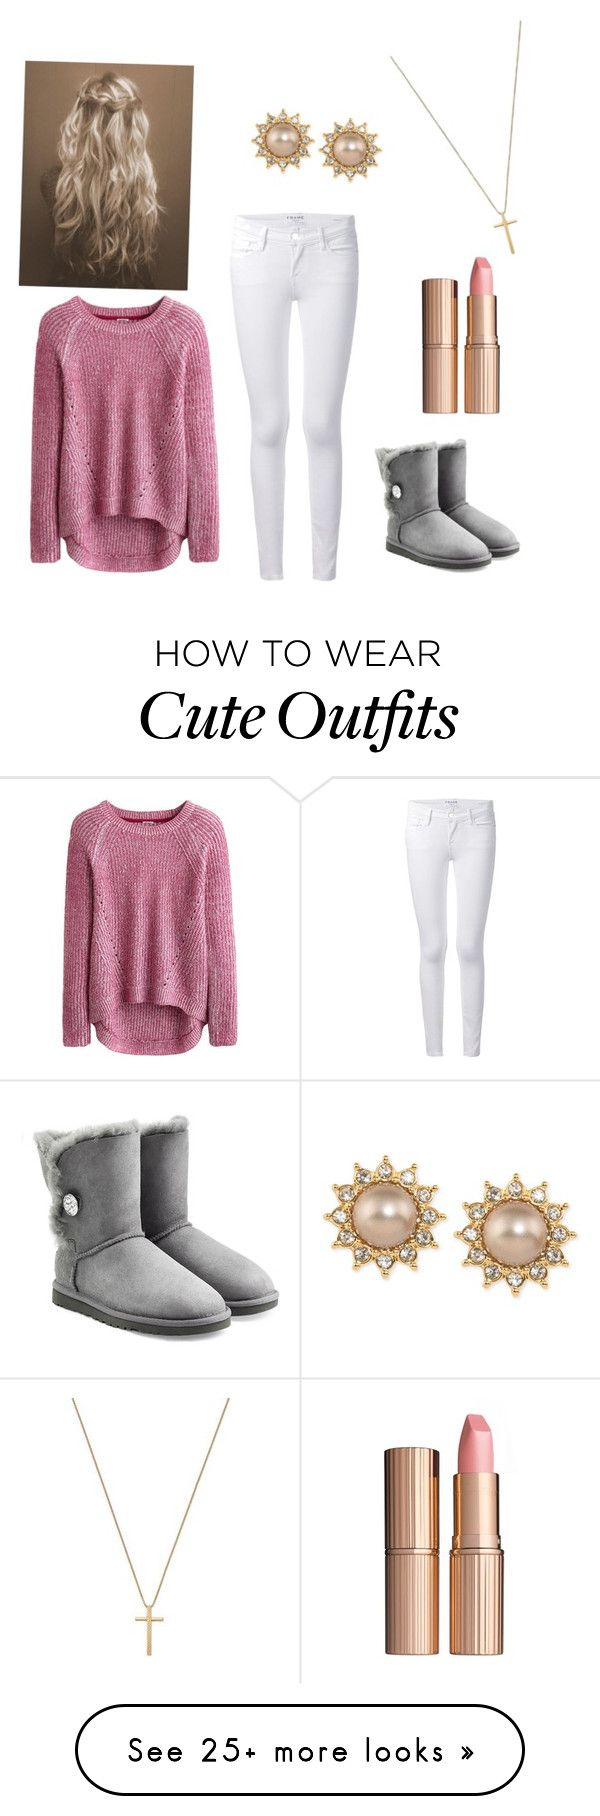 """Cute school outfit"" by seheitzman on Polyvore featuring Frame Denim, Gucci, Charlotte Tilbury, Carolee and UGG Australia"